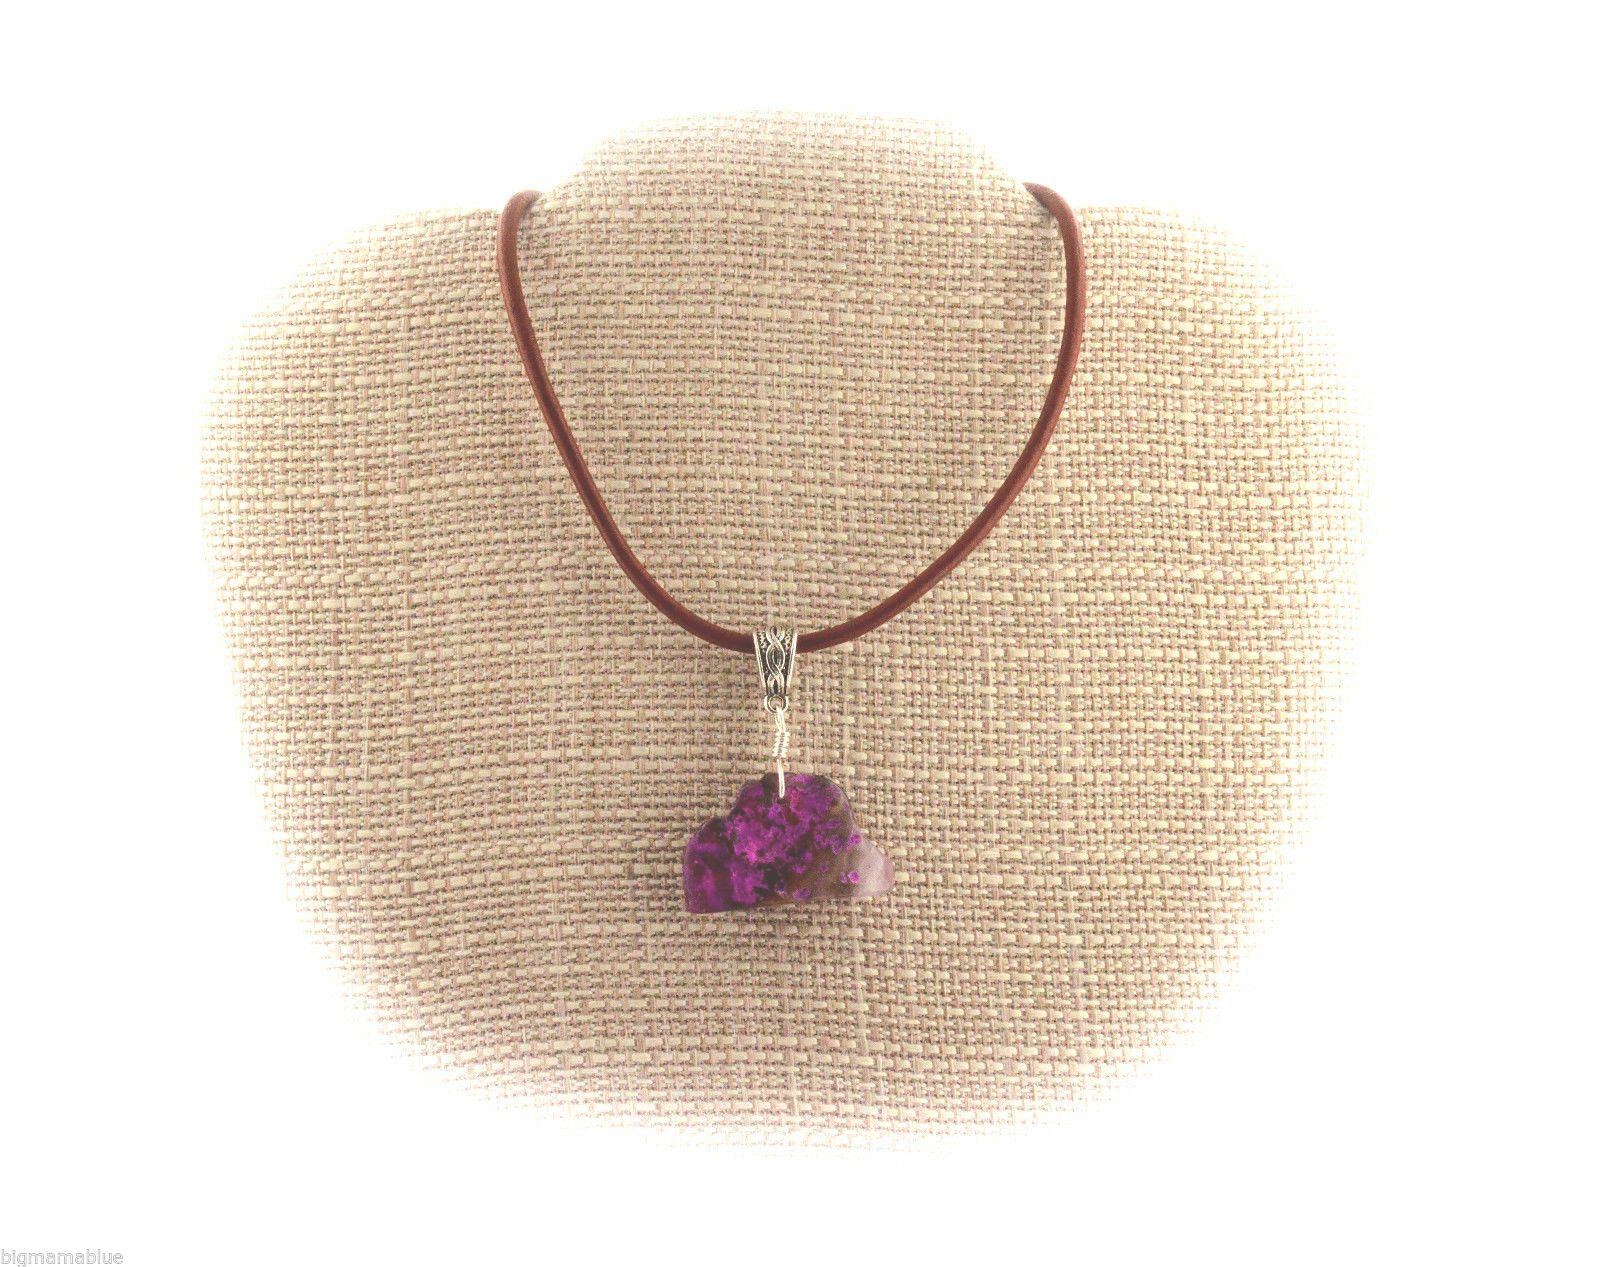 Pink Dyed Agate Wire Wrap Pendant Necklace A68-07 Leather Cord FREE GIFT BOX